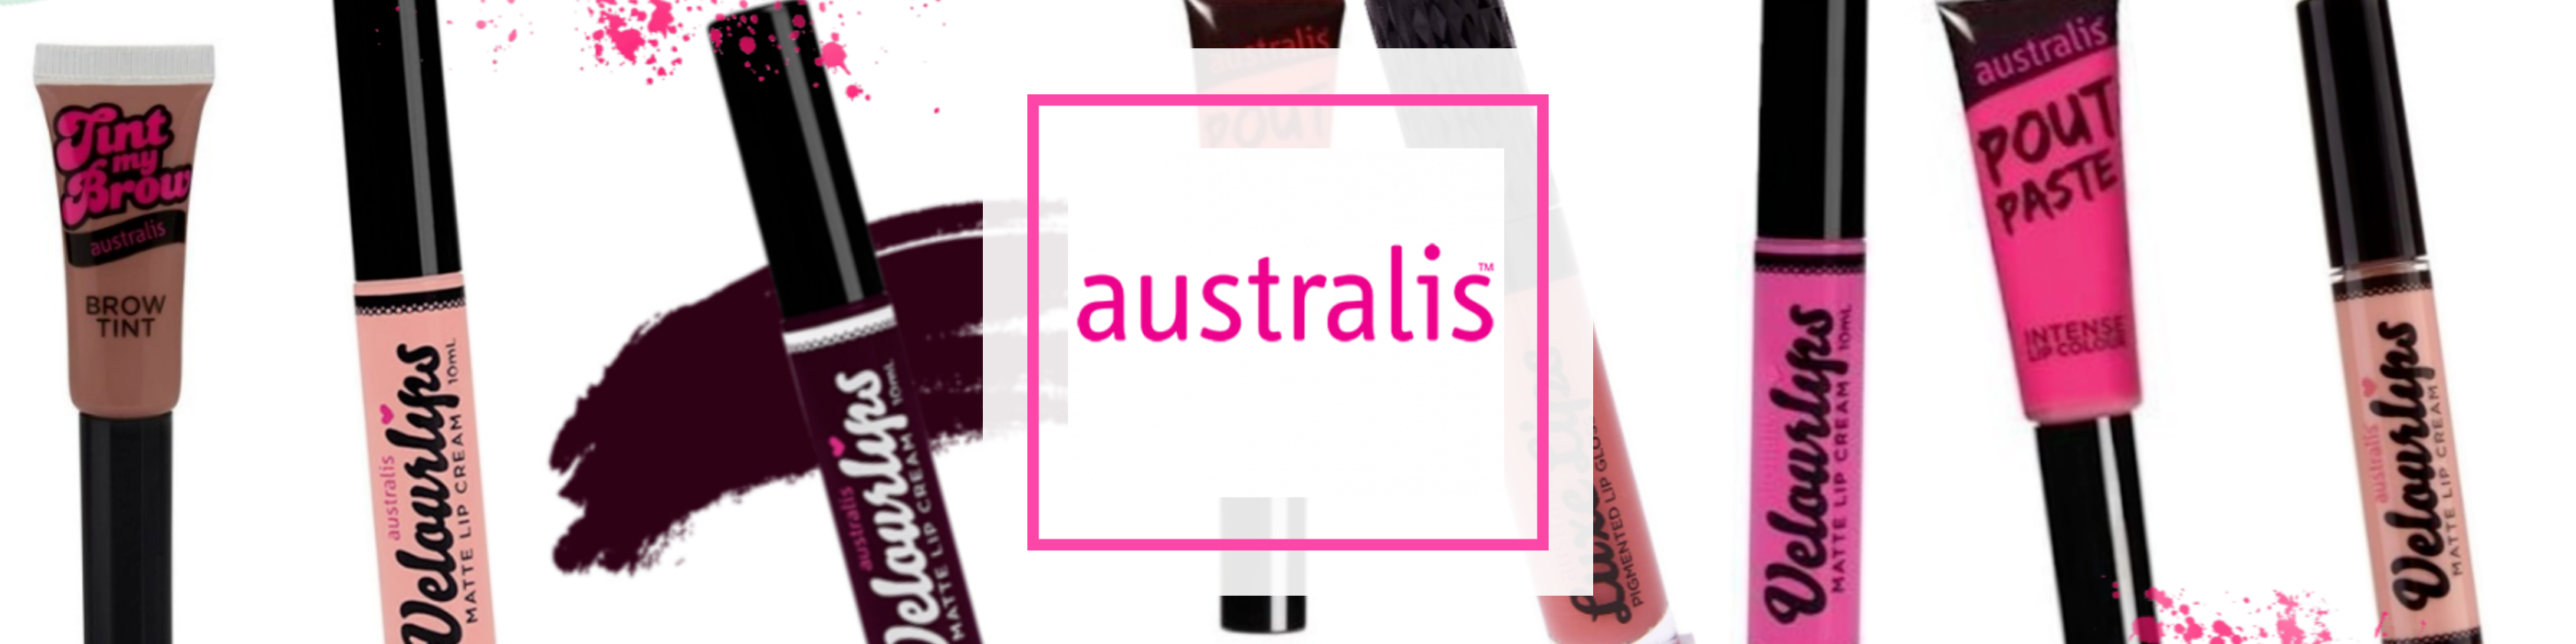 Australis Laybuy Humm Afterpay Boutique Cosmetics Free Shipping